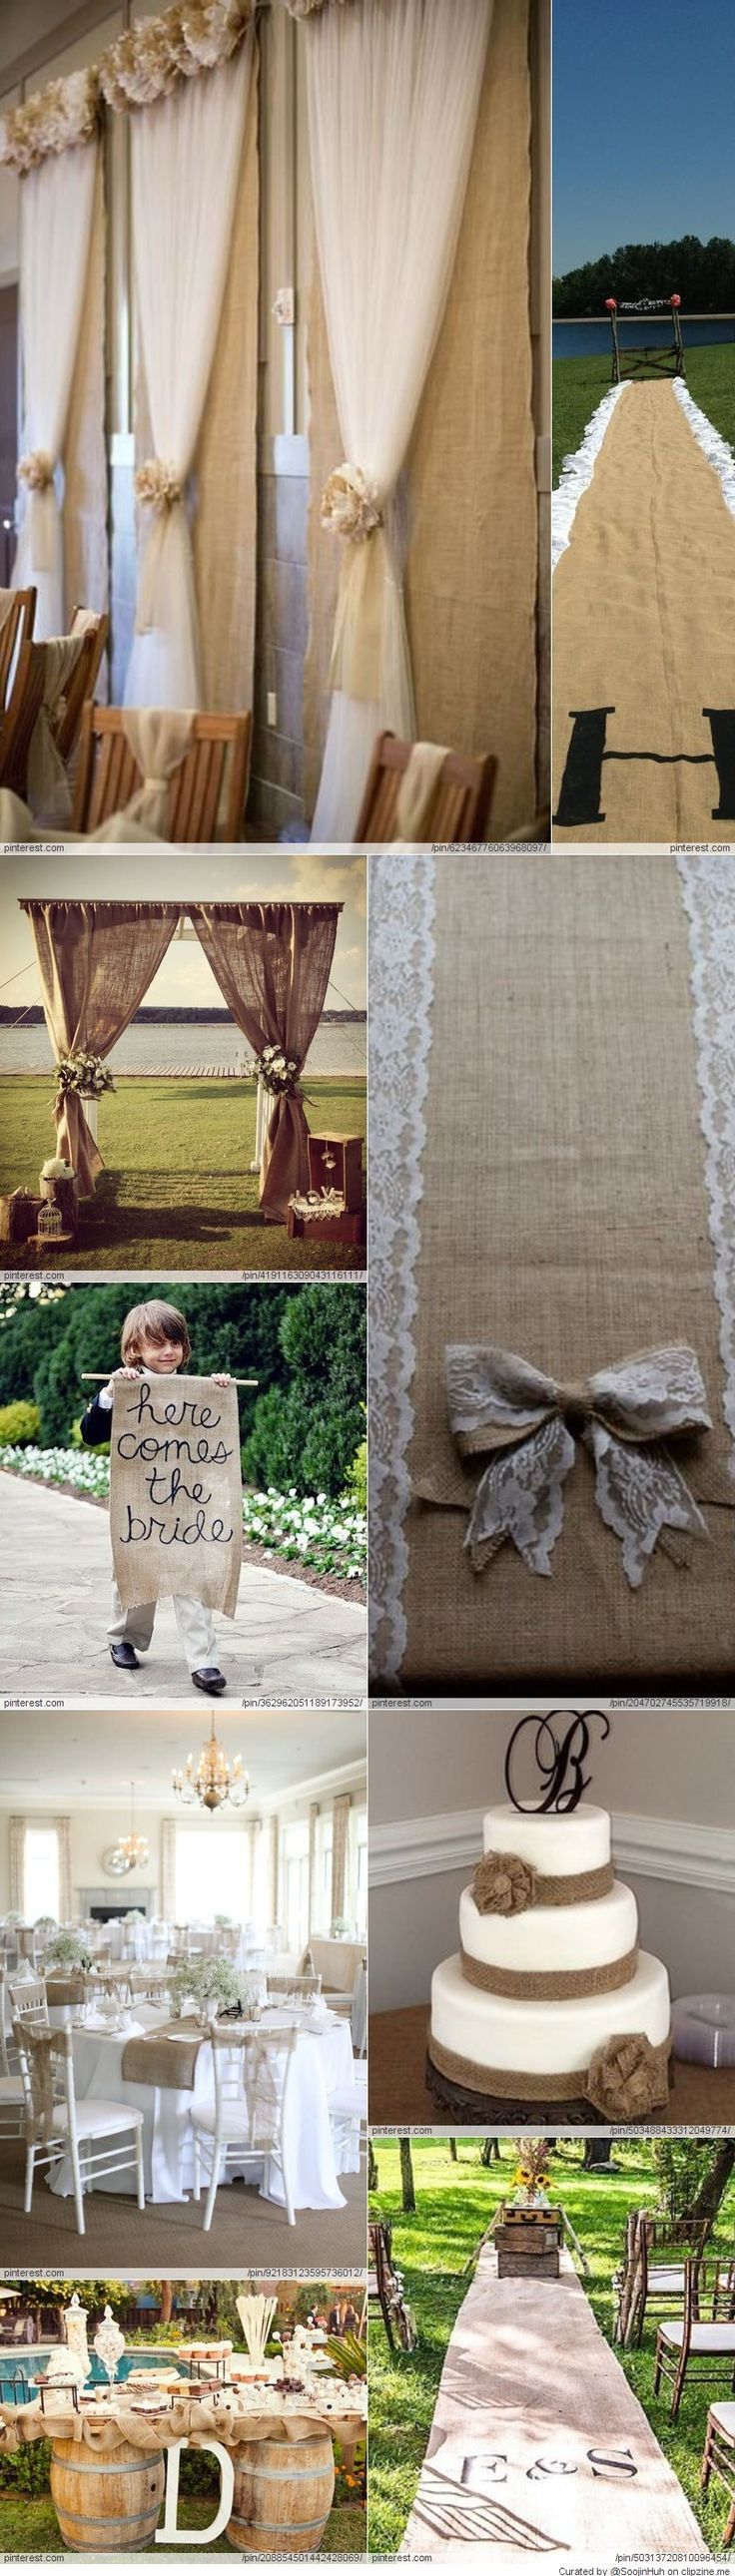 wedding ideas using burlap 399 best images about a country southern wedding w a 28335